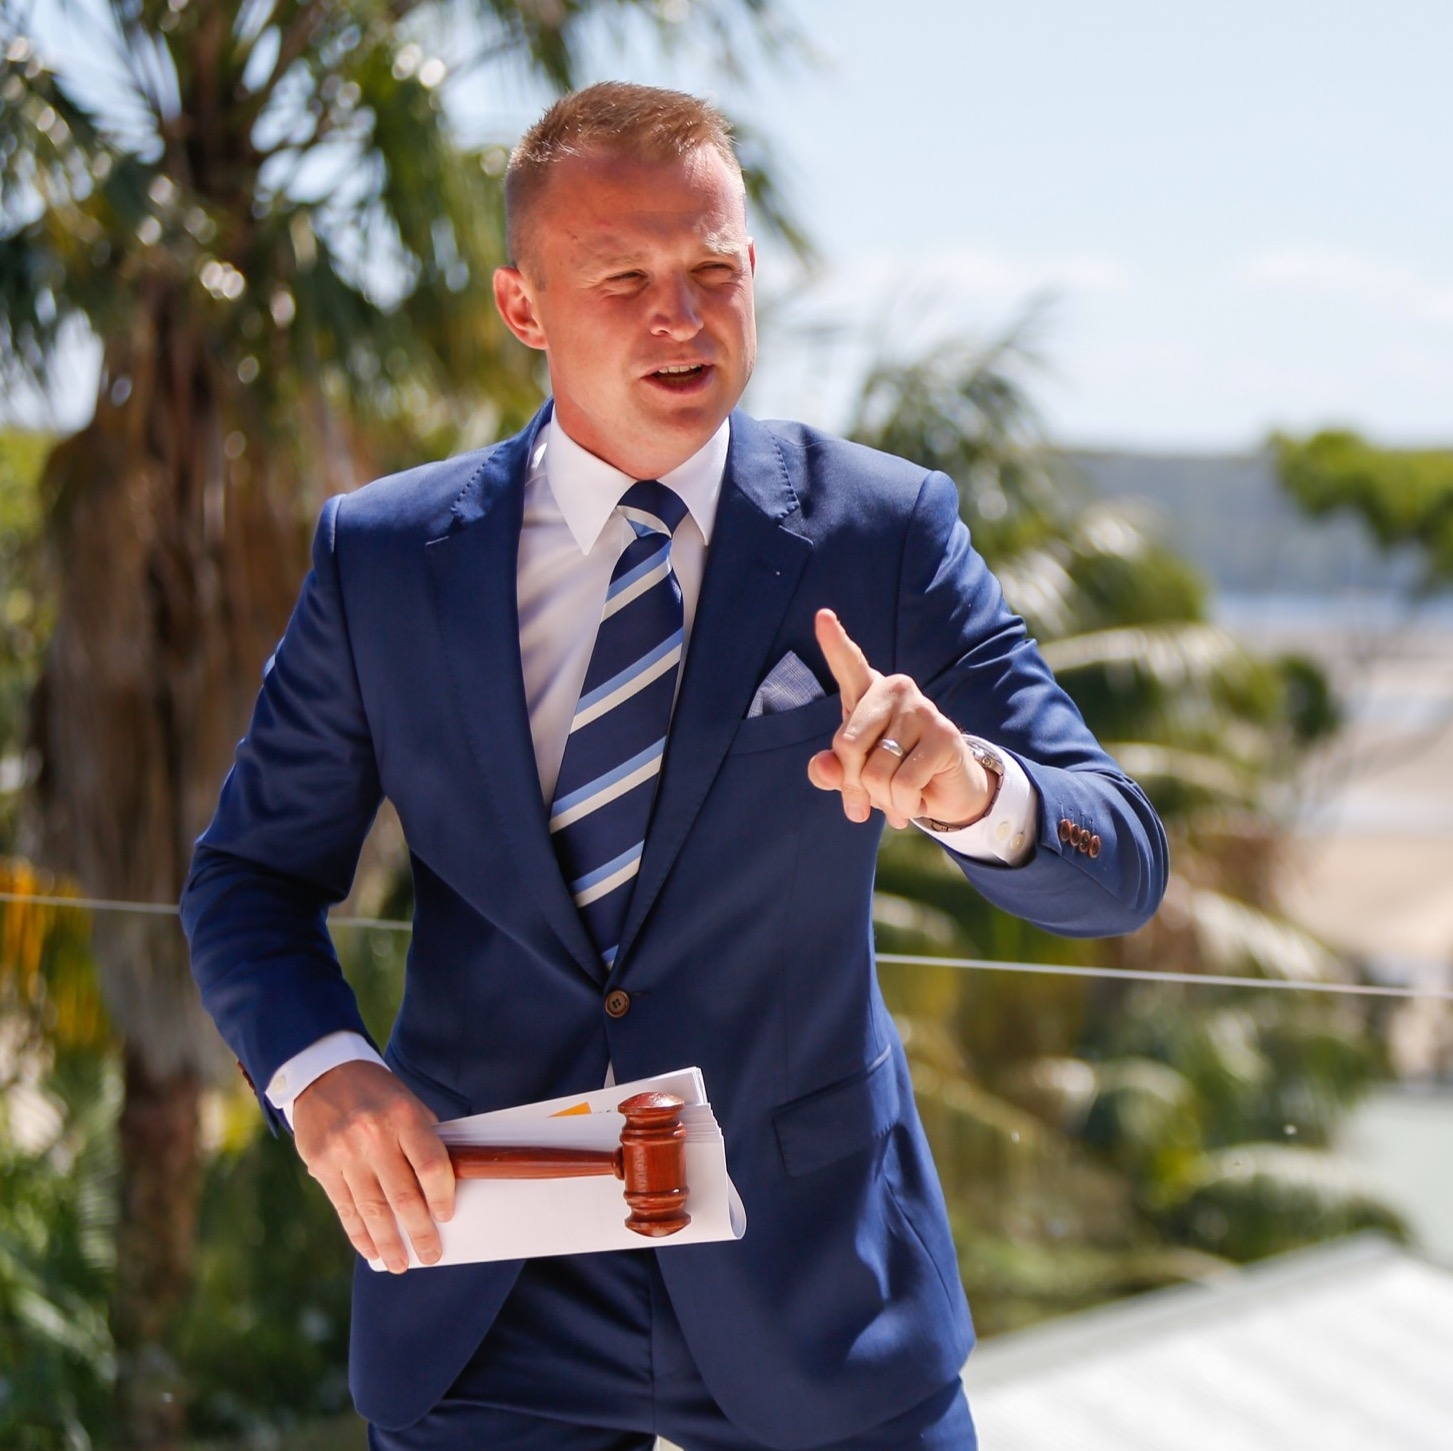 MICHAEL VIRLEY - A star auctioneer with Australia's premier auction group now at the helm of an exciting new team. Michael has been at the coal face as an agent so understands the work required to be appointed as the vendors agent, and the dedication required to achieve great results for them consistently. Michael has a natural warmth and presence and ability to disarm and engage buyers. Michael brings years of negotiation skill and authority to the auction floor, allowing him to constantly maximise the results for his clients and property owners. He loves what he does, and is recognised as one of the industries finest.REB Auctioneer of the Year 2019 - FinalistREB Auctioneer of the Year 2018 - Finalist